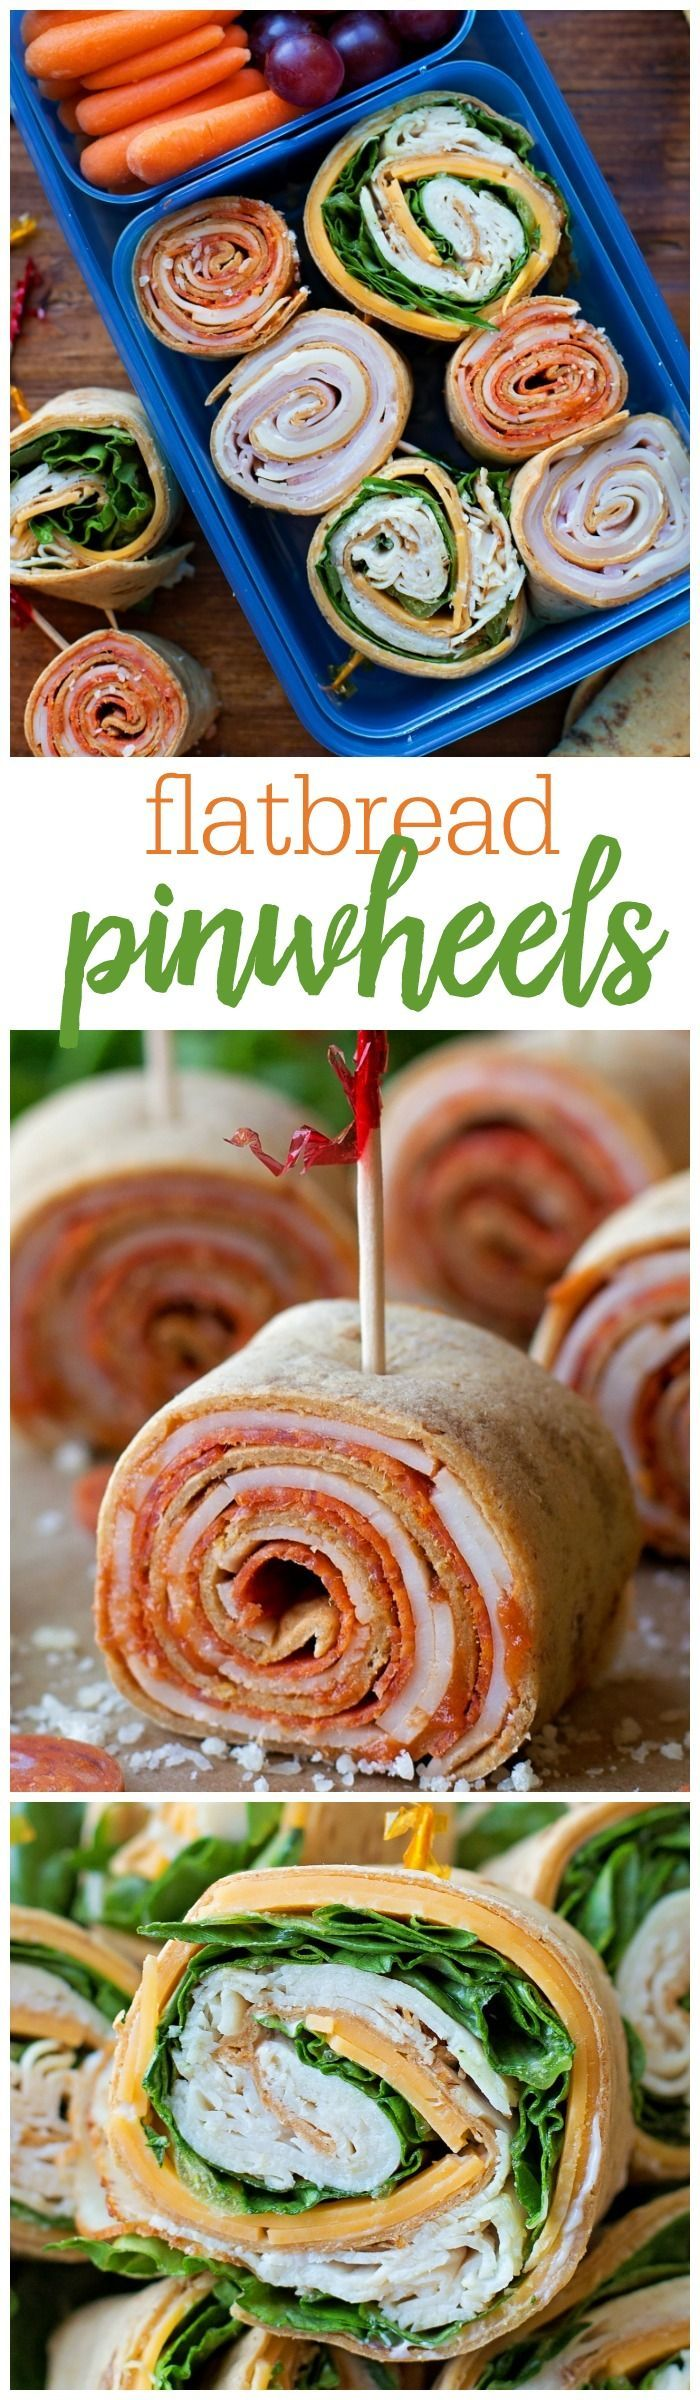 Flatbread Wrap Bites - these pinwheels are perfect for lunch! From Pepperoni…